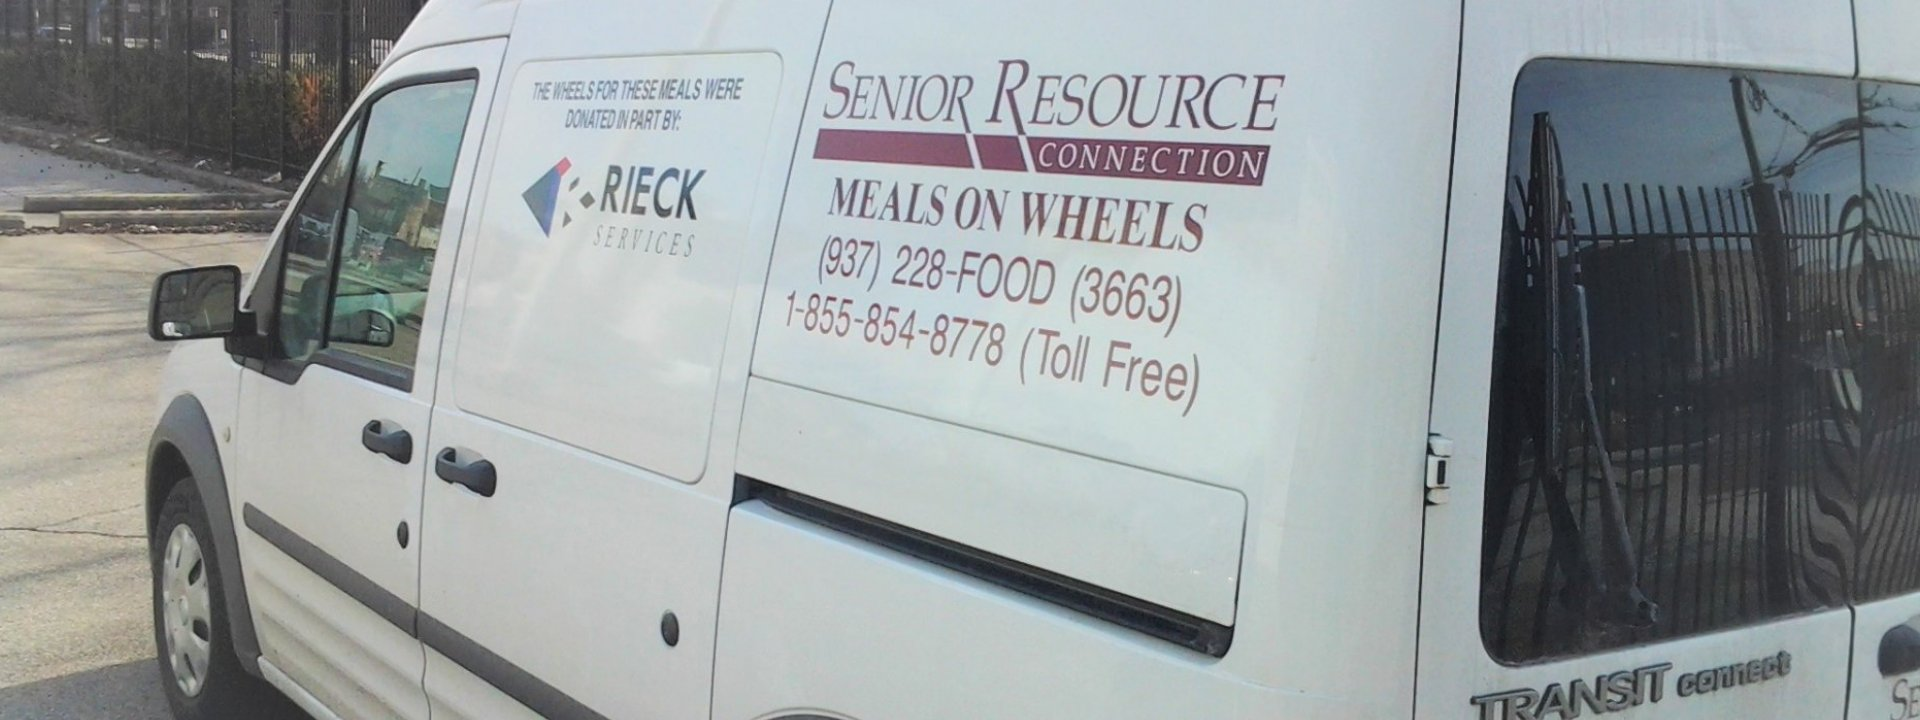 White van with logo